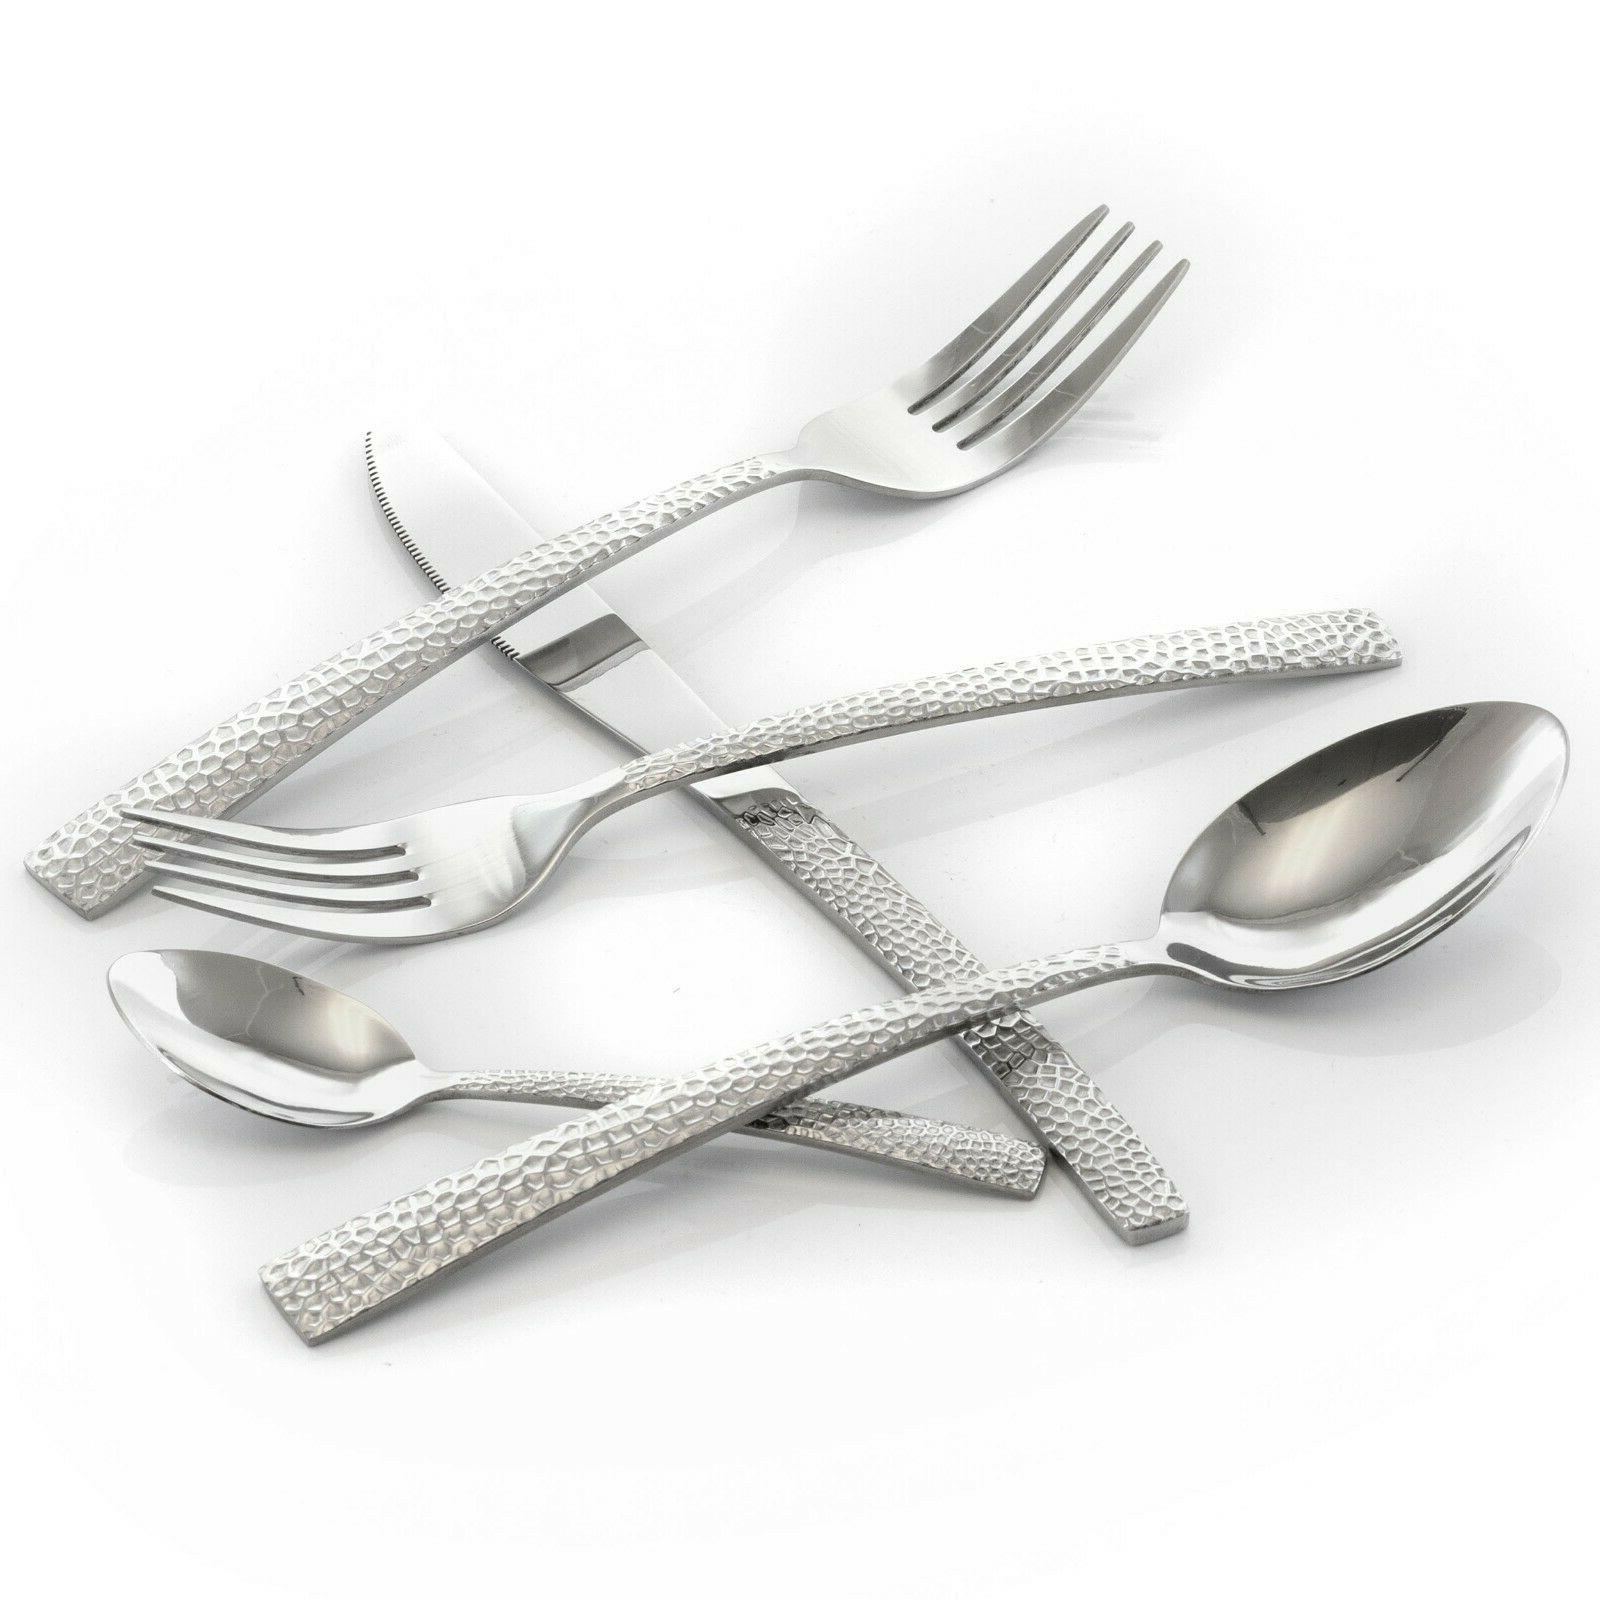 MegaChef Baily Flatware Silverware, Stainless Service for 4